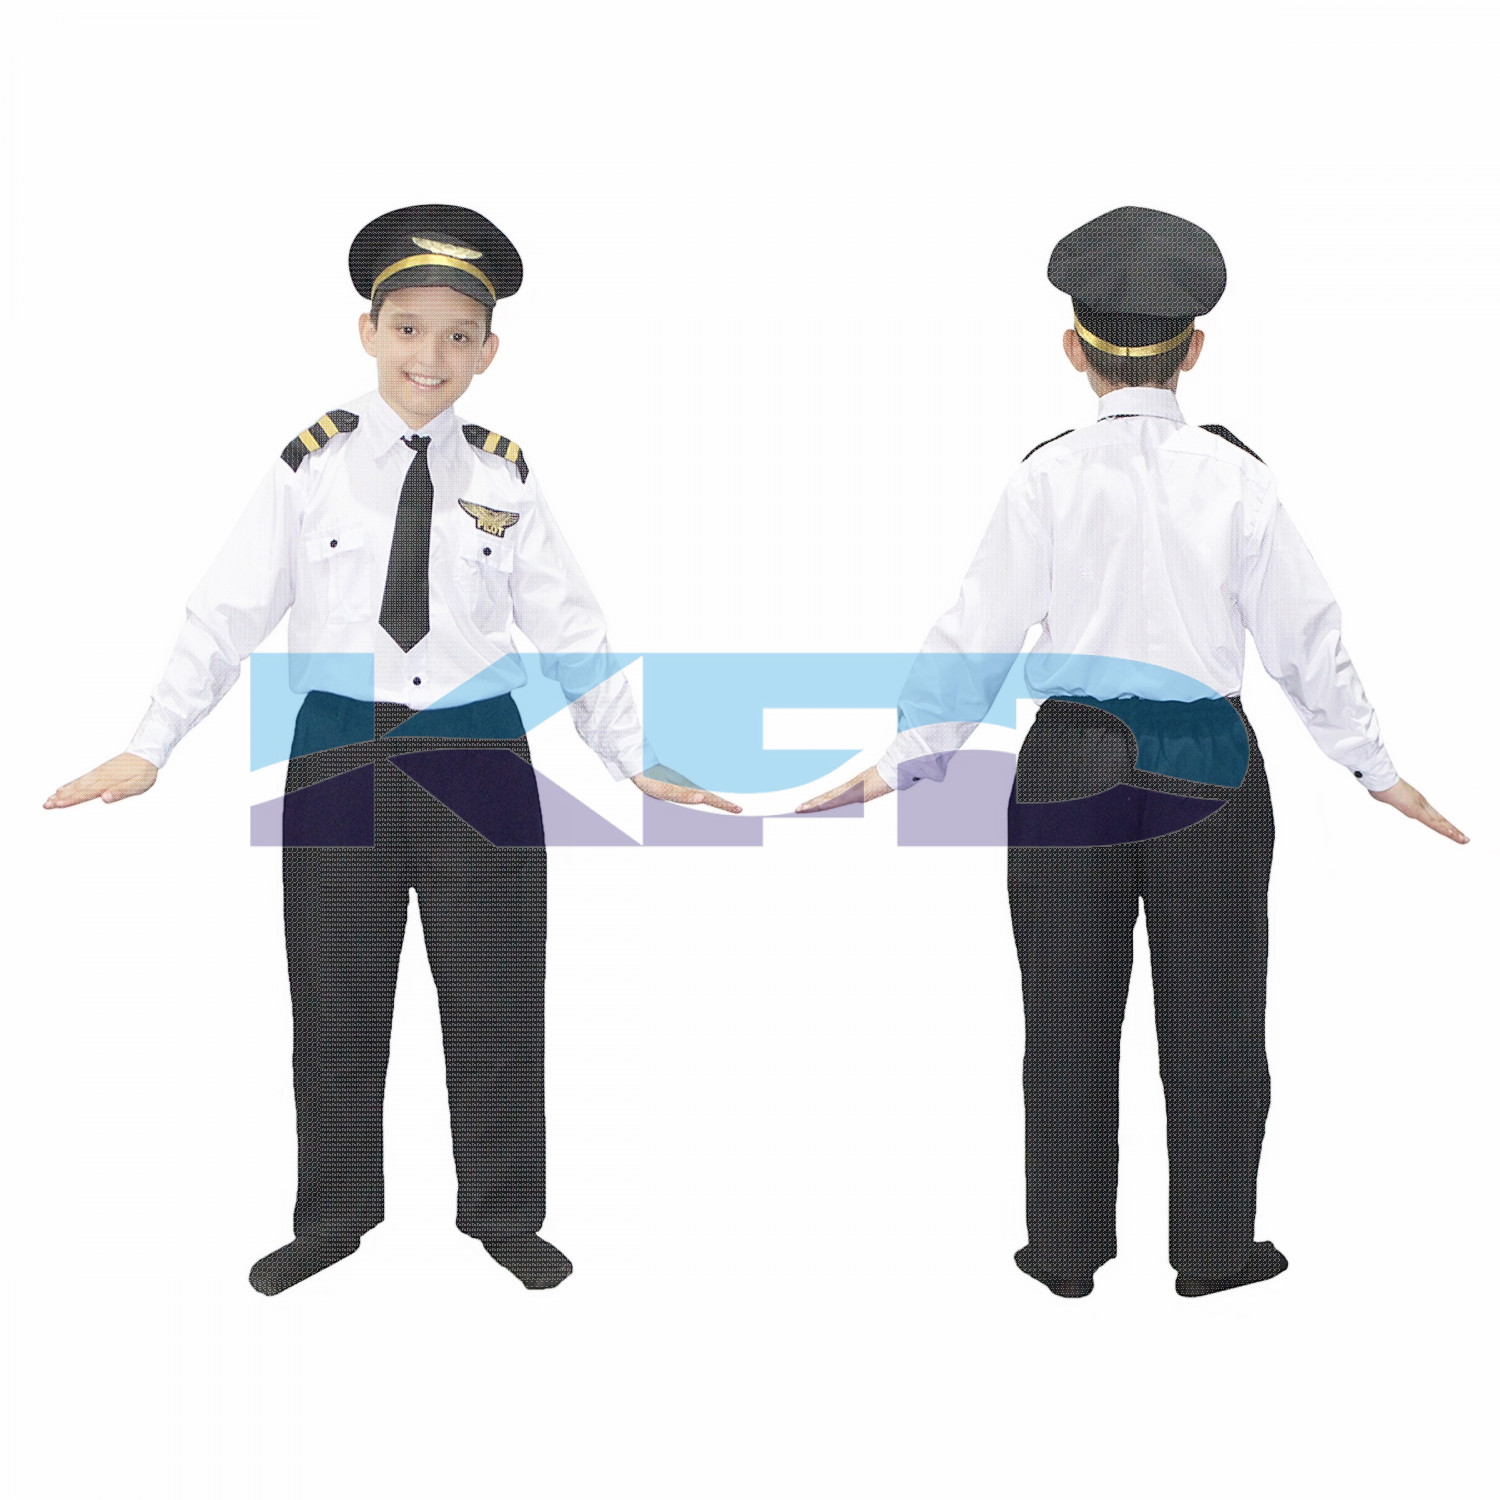 Pilot With Black Cap Our Helper Costume For Kids School Annual Function/Theme Party/Competition/Stage Shows Dress